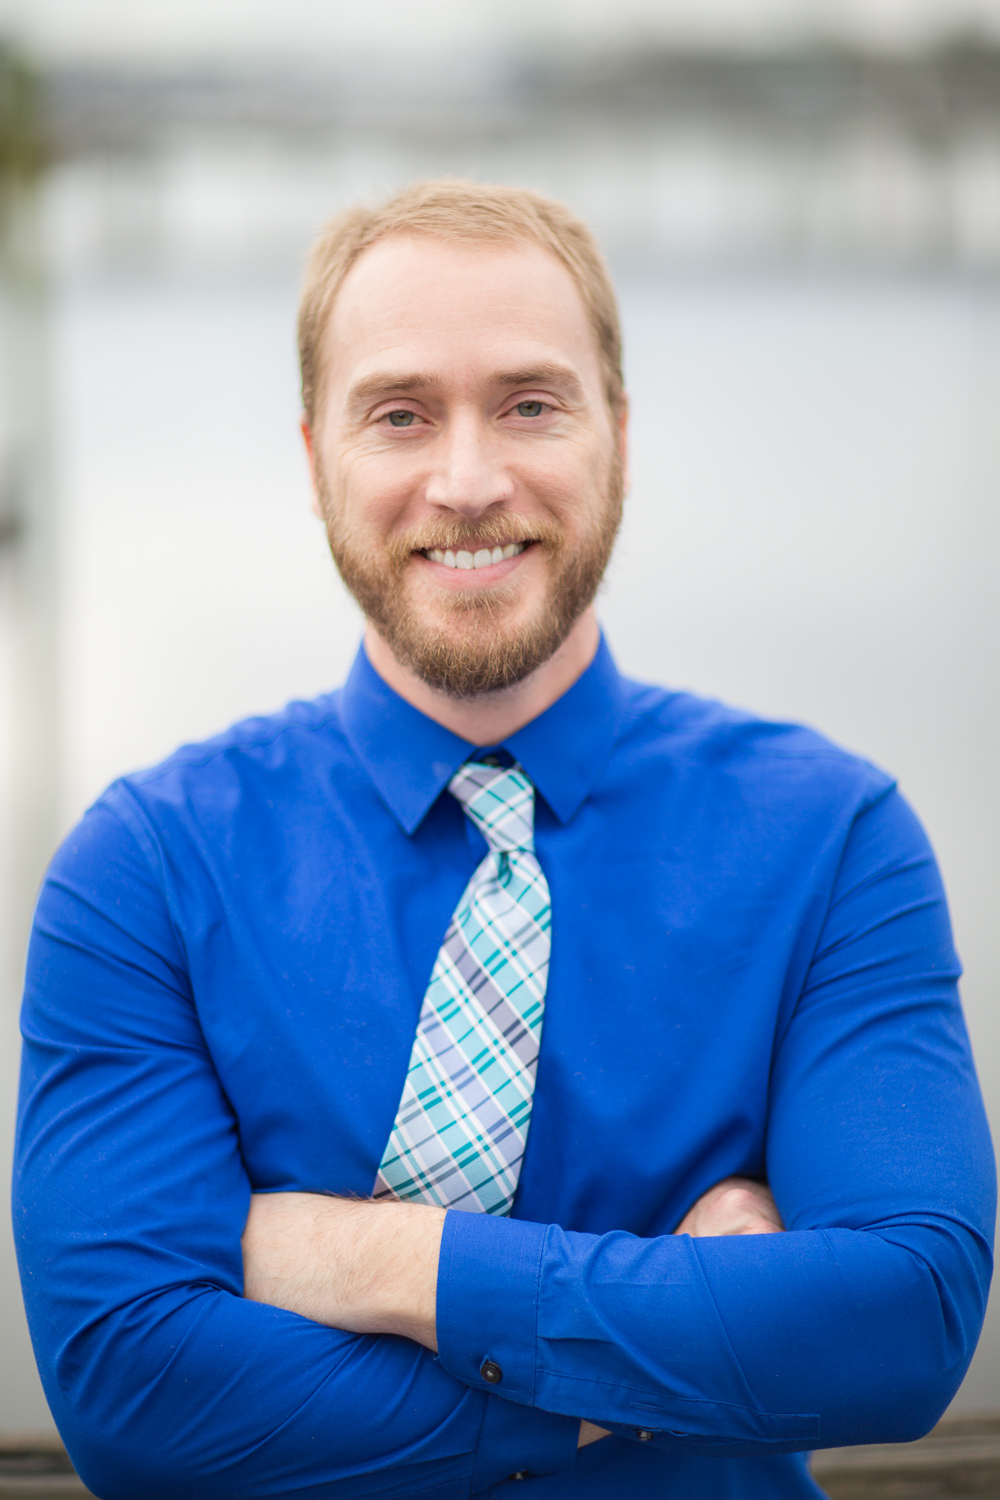 Brian Blake is the Project Manager of BRC on the Prevention of Youth Violence. The BRC is a non-profit organization in Wilmington, North Carolina dedicated to creating pathways to success for the youth and families in the north downtown Wilmington community.